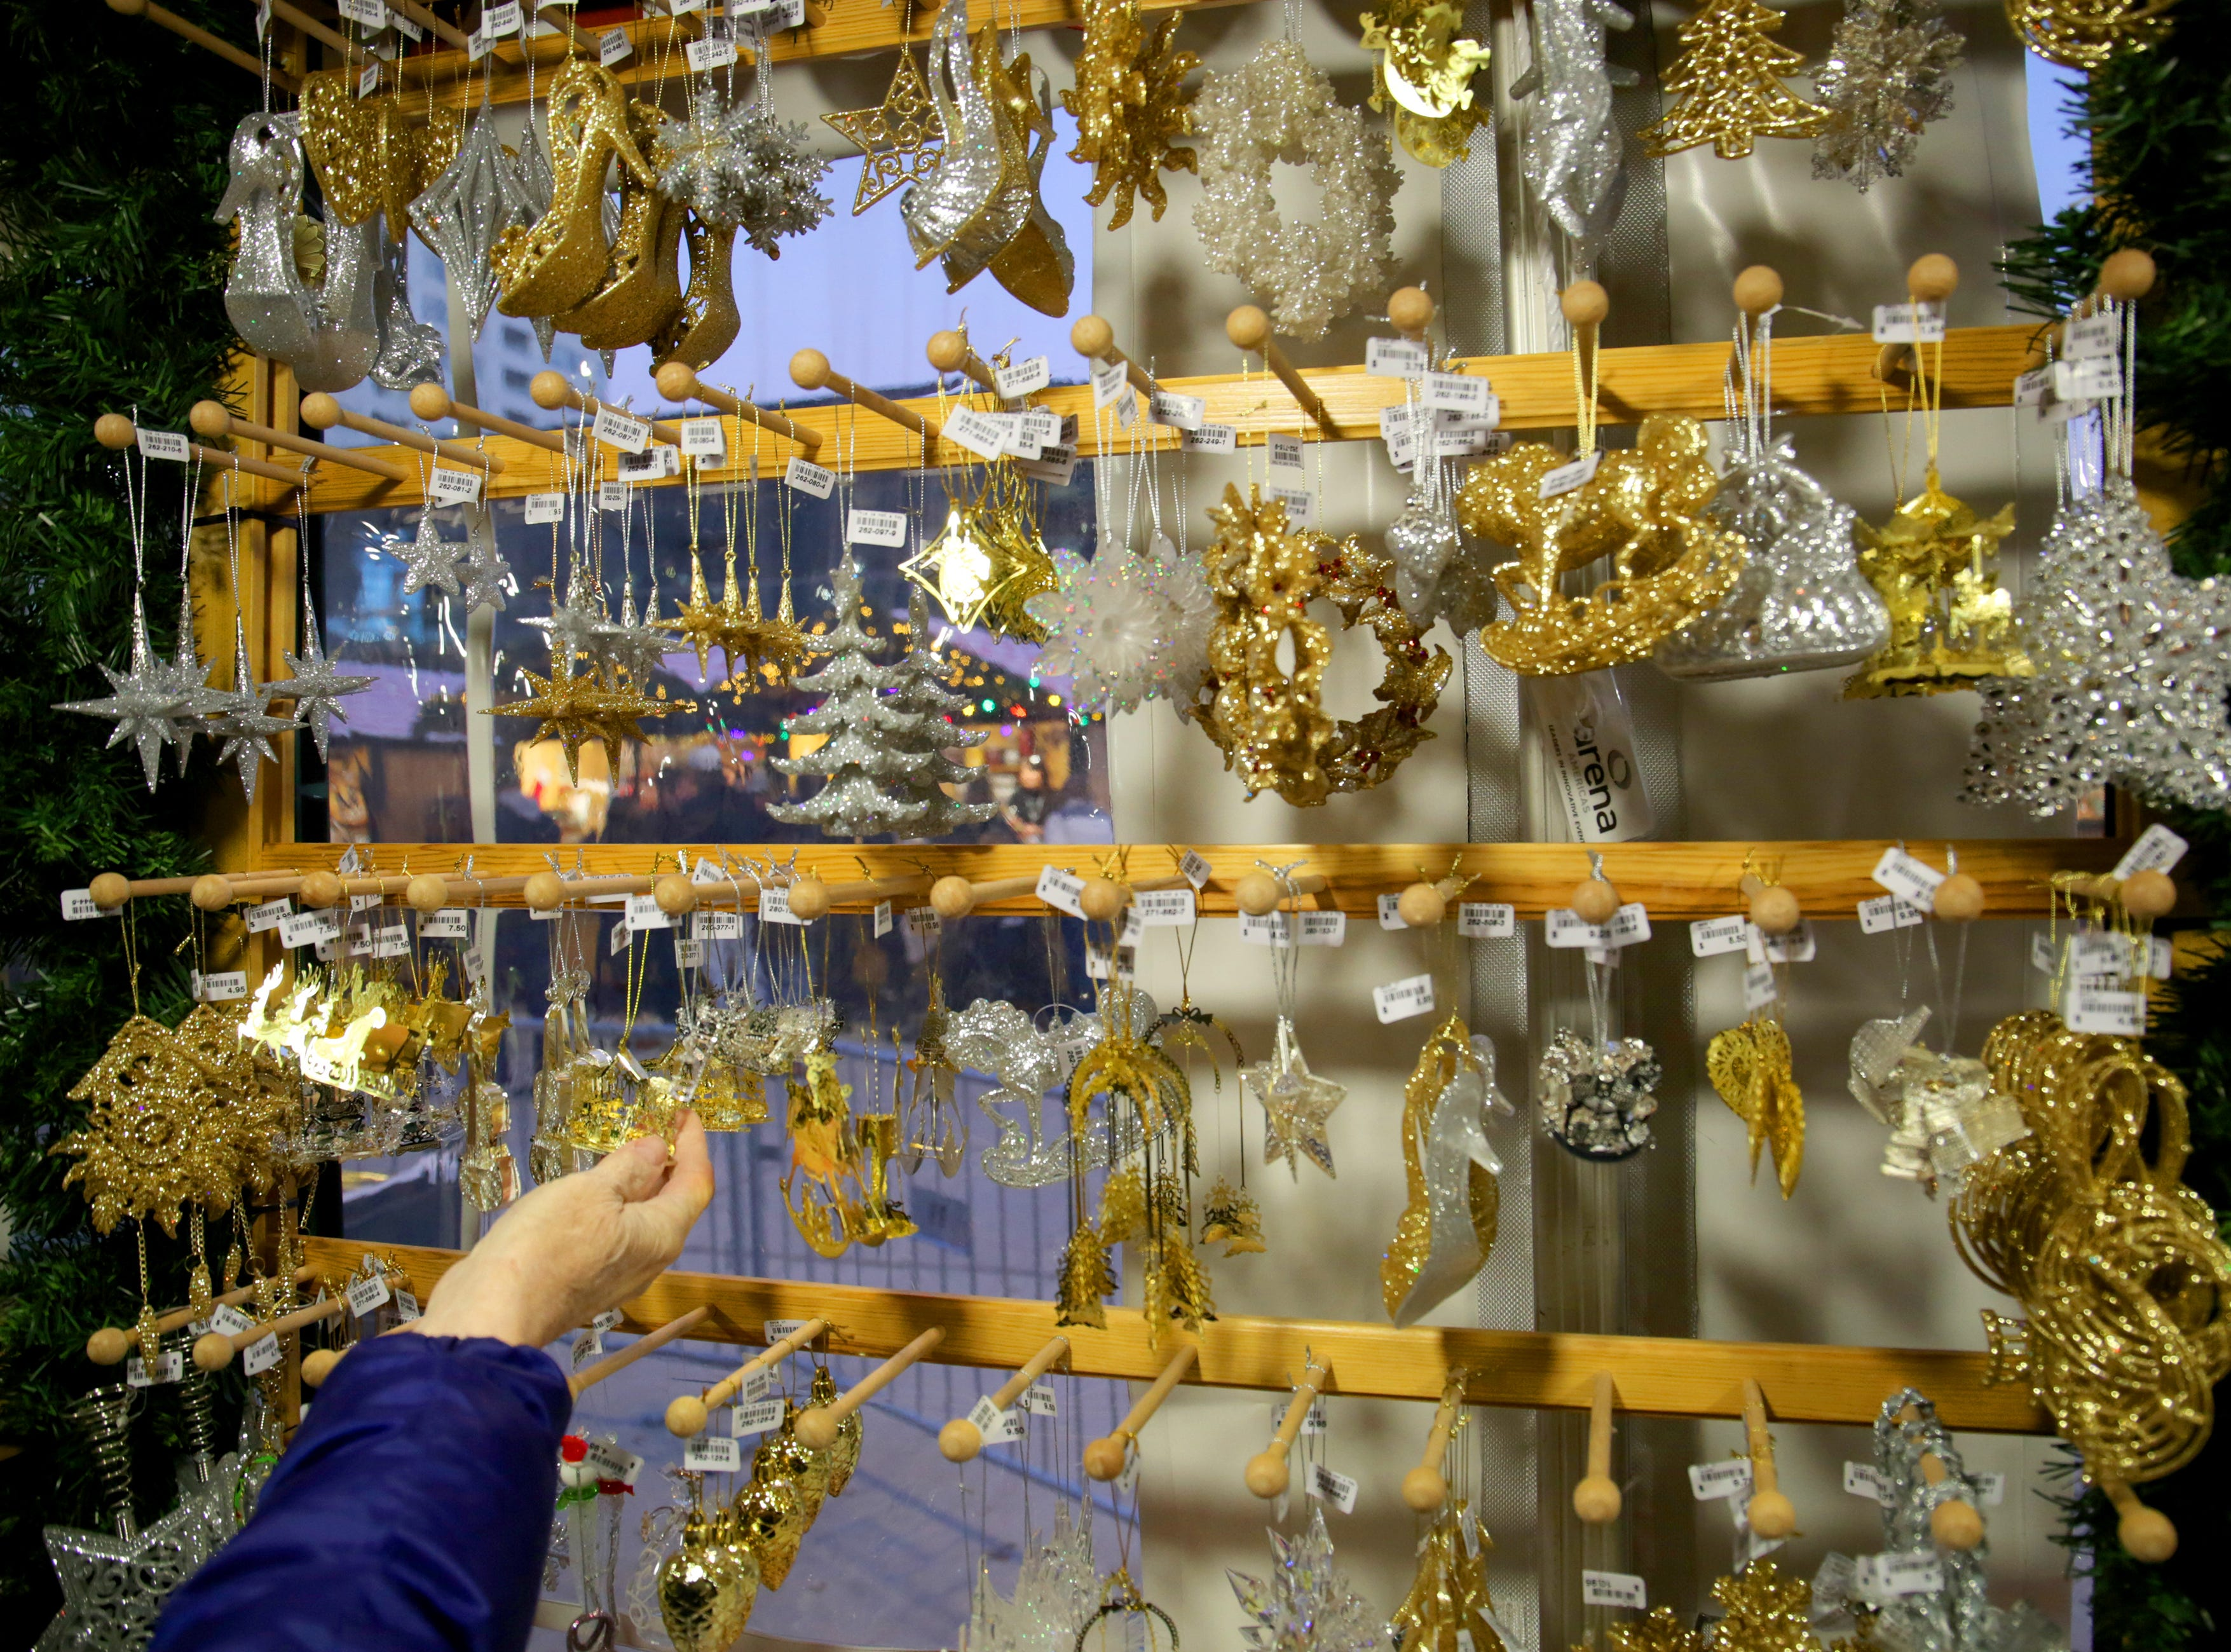 Several different types of ornaments are on display in the Kathe Wohlfahrt mini store.